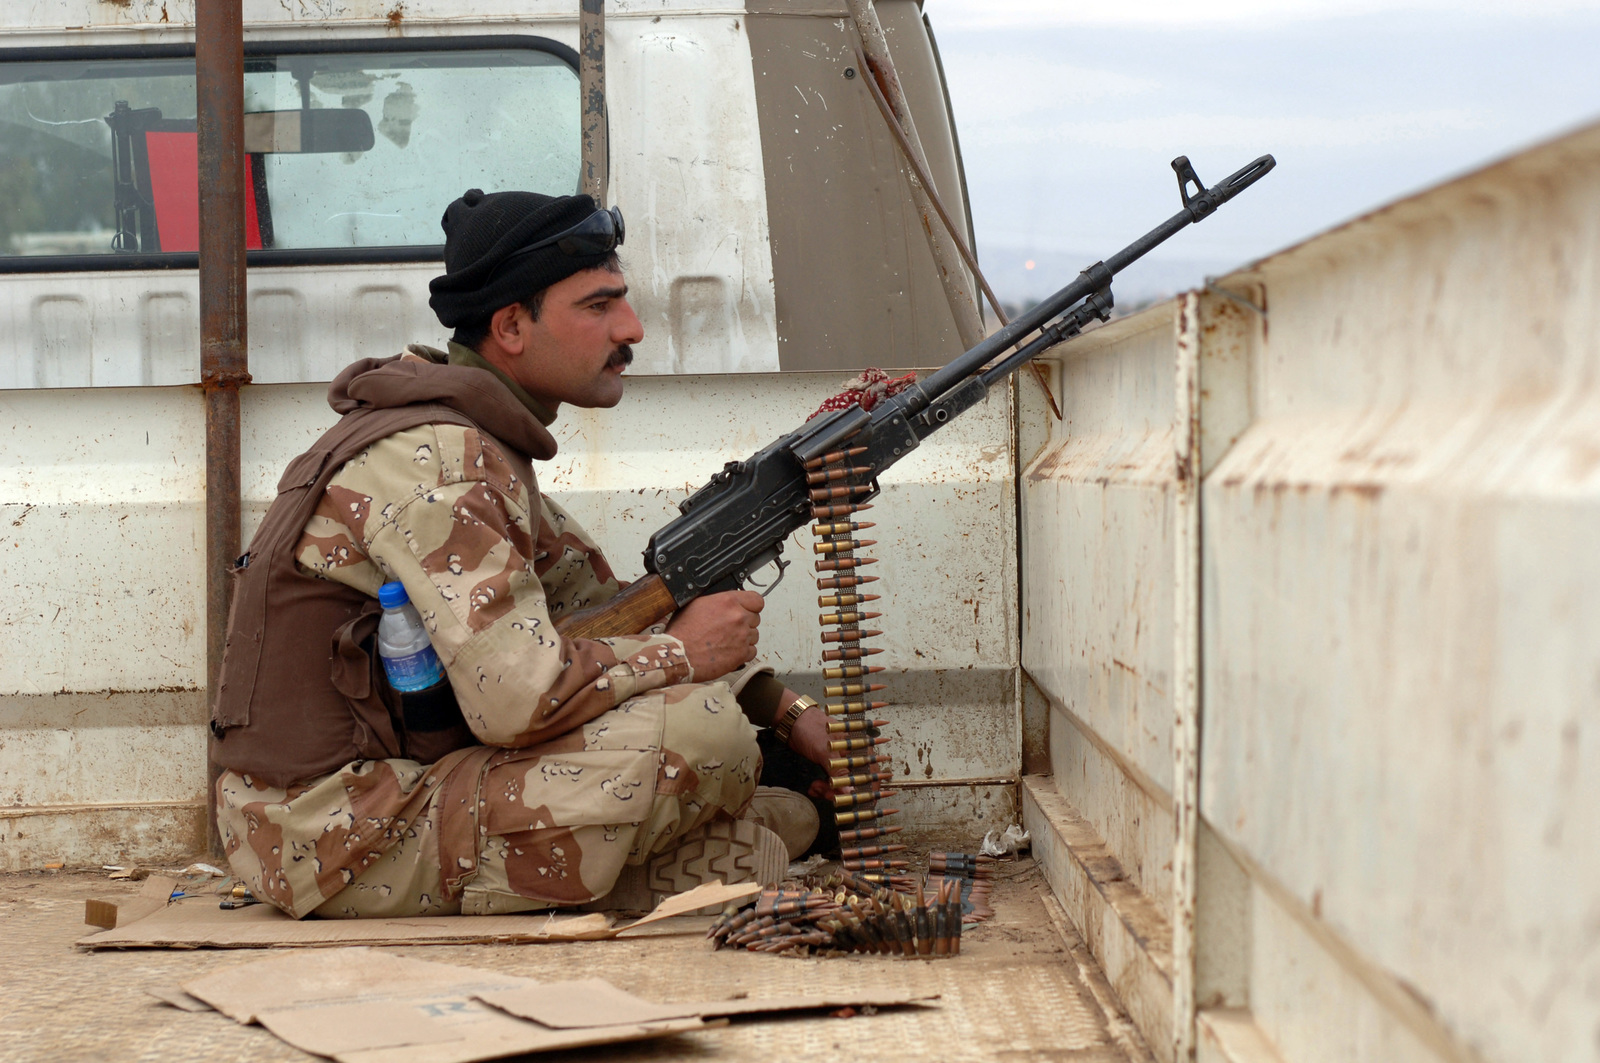 A Soldier of 1ST Company, 2nd Brigade, 4th Iraqi Army